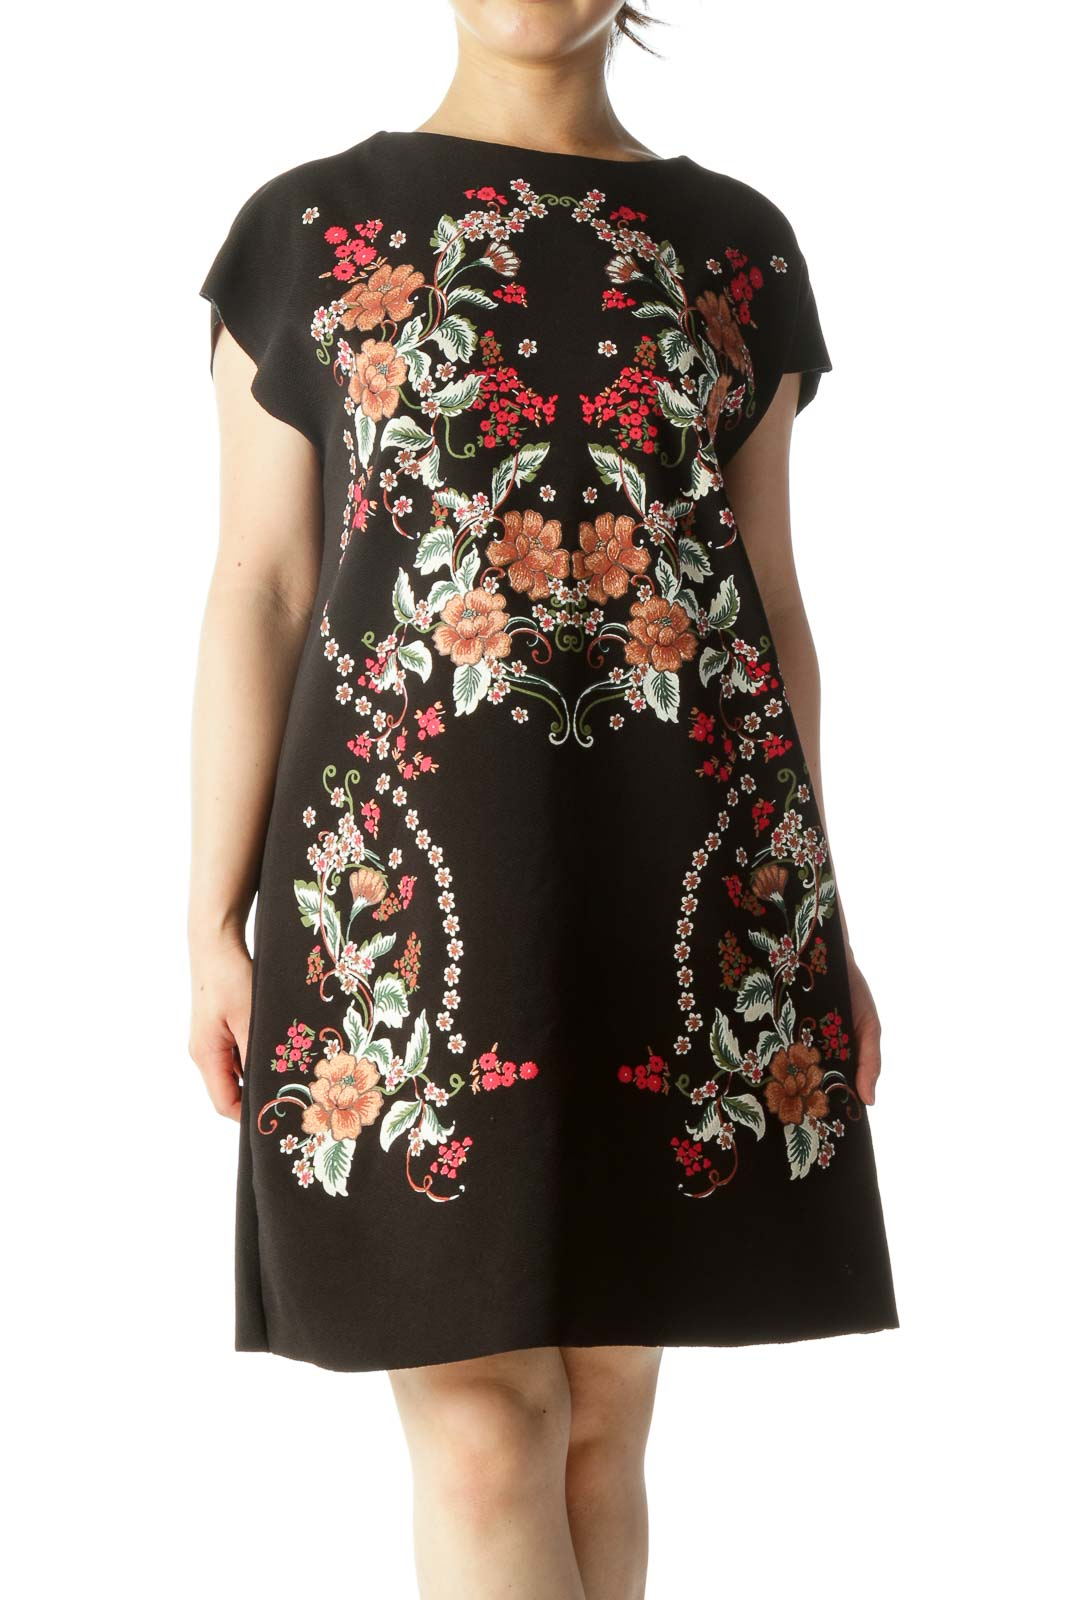 Black Orange Red White Floral Print Cap Sleeves Textured Pull-On Dress